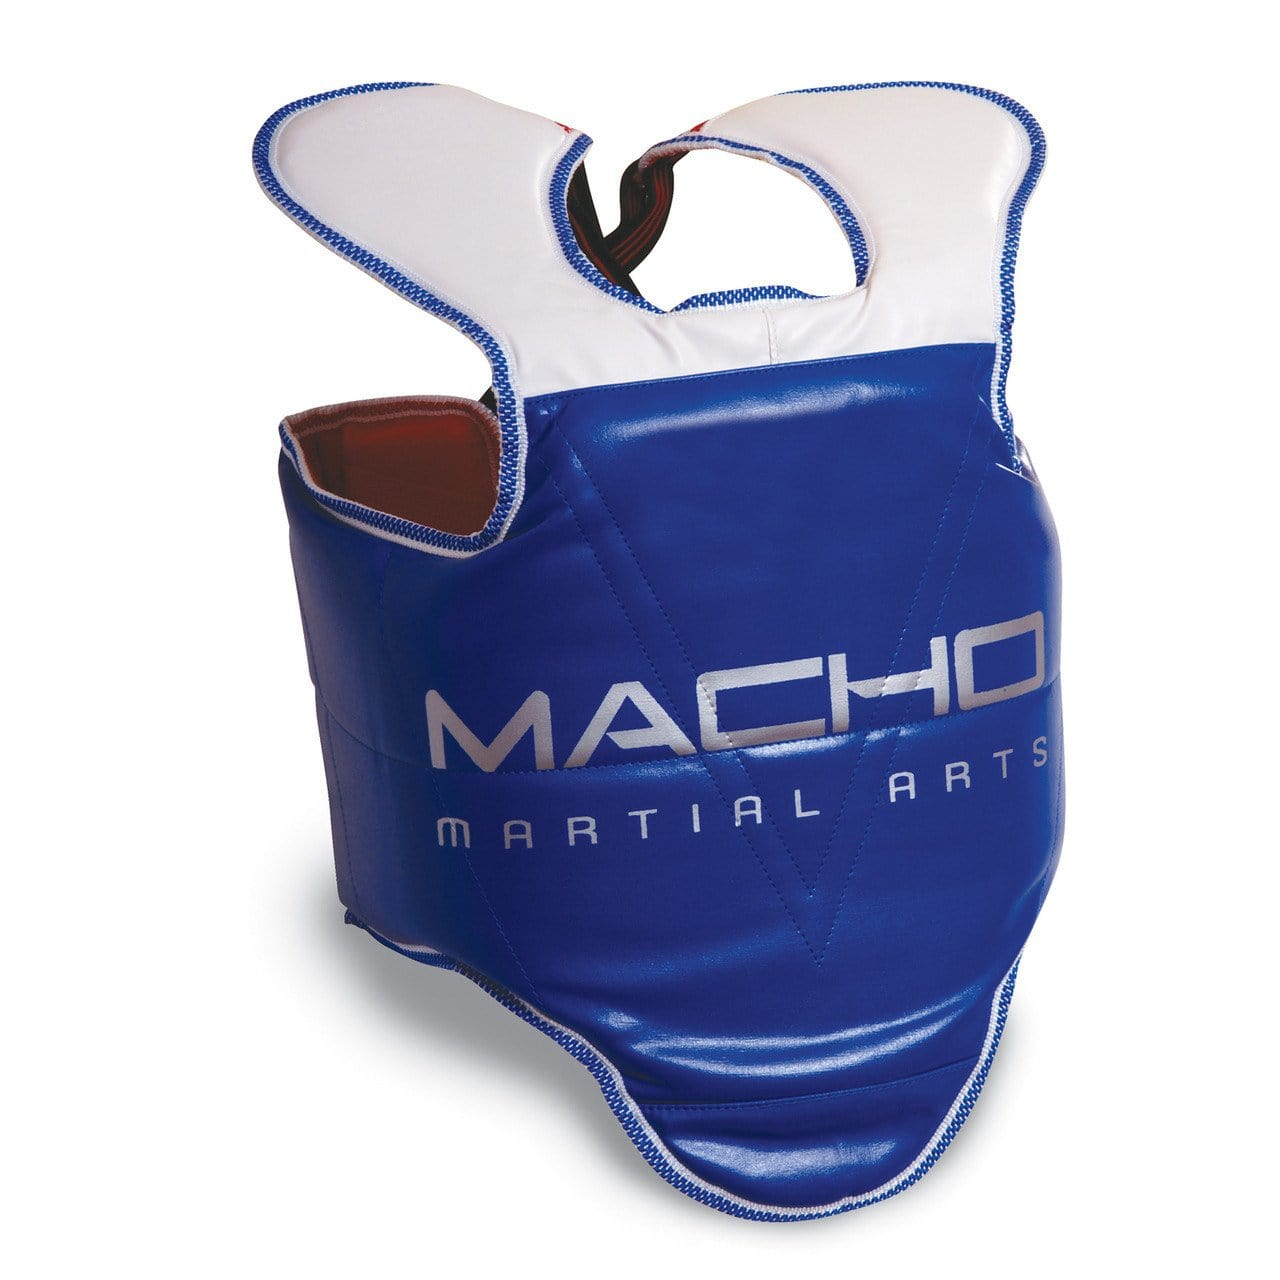 Macho SOLID Hogu Karate TaeKwonDo Sparring Chest Guard.